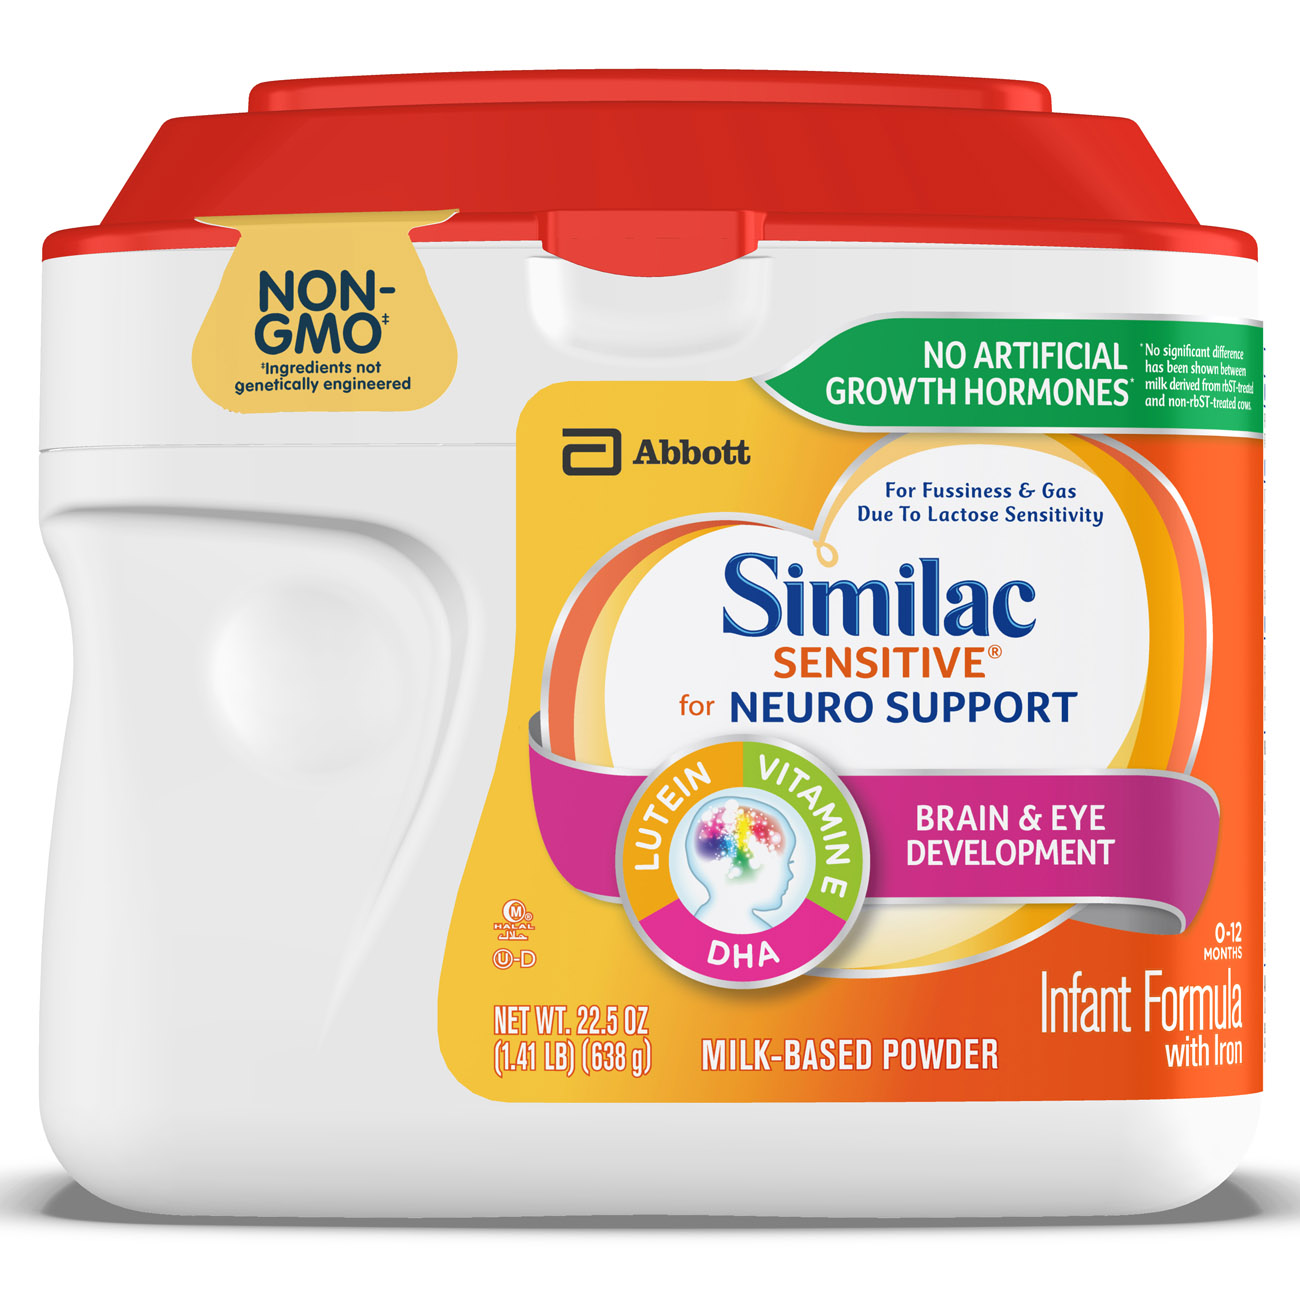 Similac Sensitive for Neuro Support Infant Formula with Iron Baby Formula 1.41 lb Canister